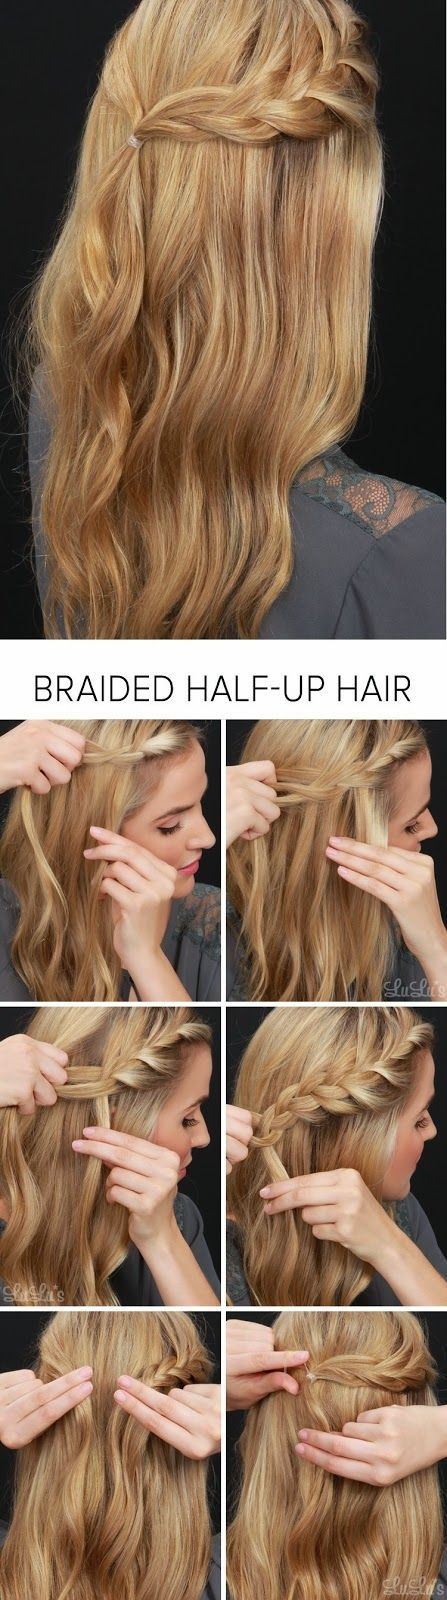 Pin By Flashmode Magazine On Tutorial Coiffure Hair Styles Hair Tutorial Running Late Hairstyles